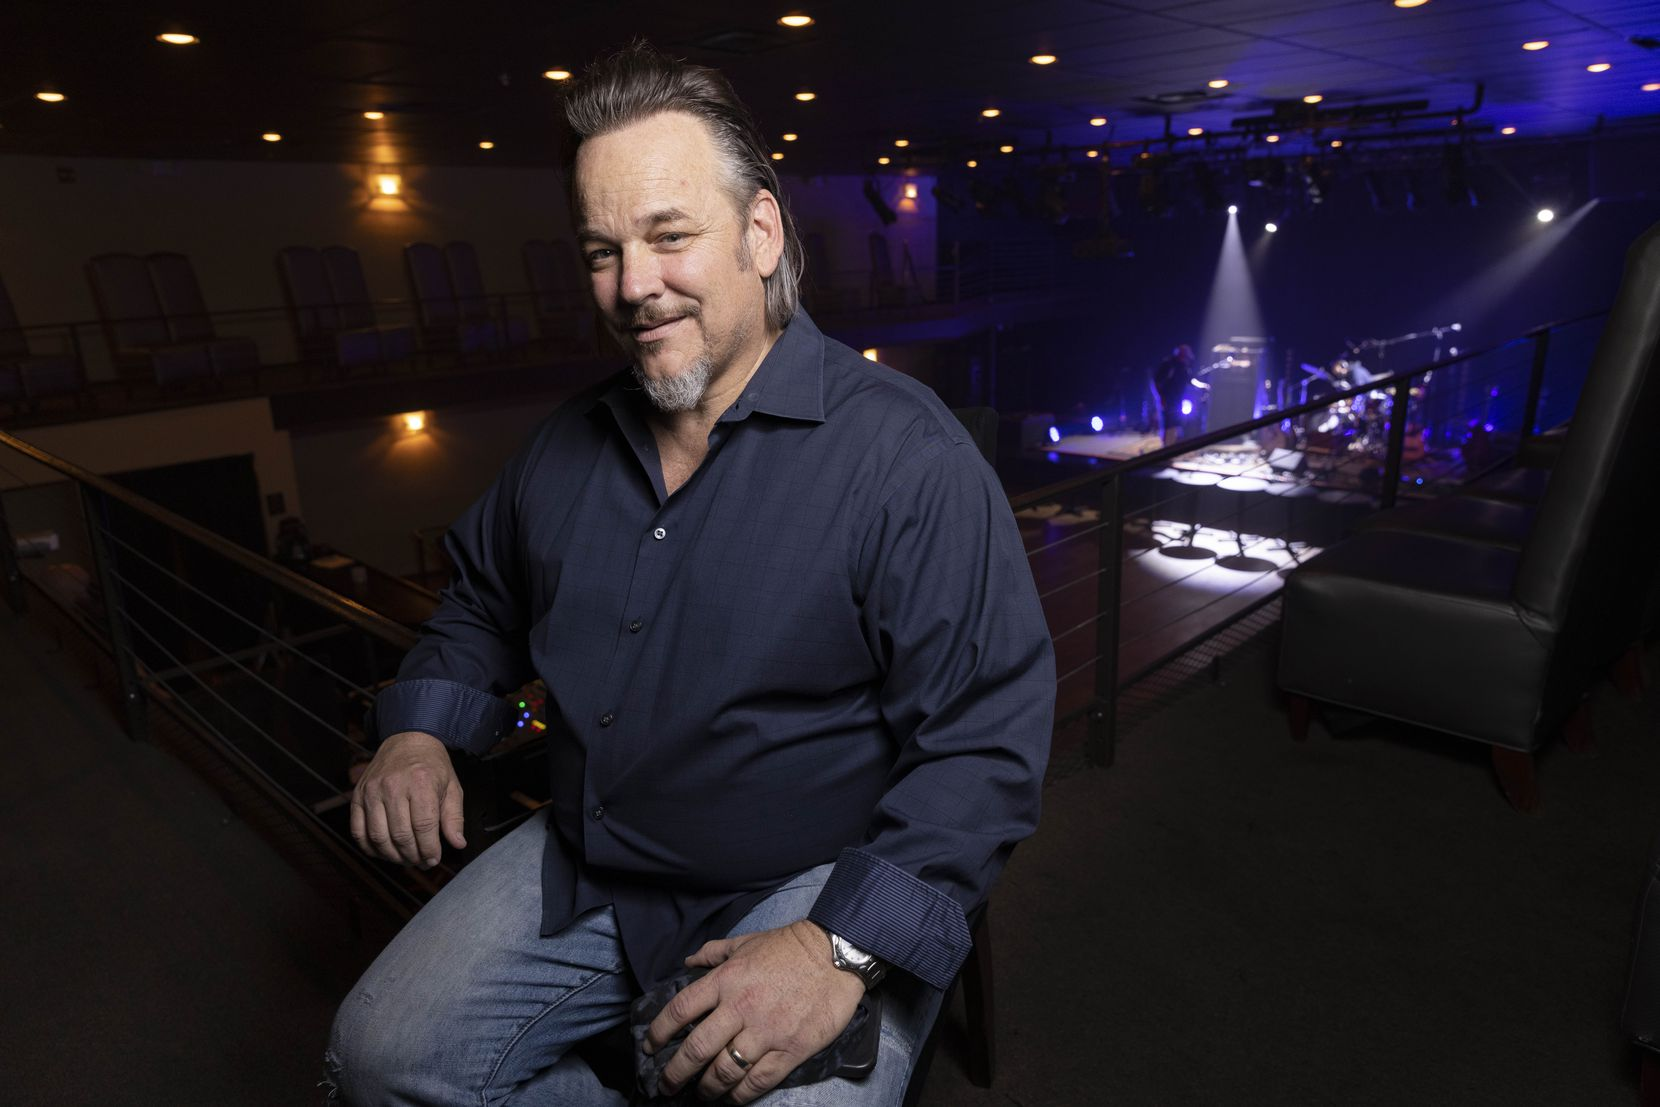 Edwin Cabaniss, the owner of the Kessler Theater, helped spearhead the national bipartisan movement that led to the Shuttered Venue Operators Grant, which helped thousands of arts venues across the country stay afloat, including many in North Texas.